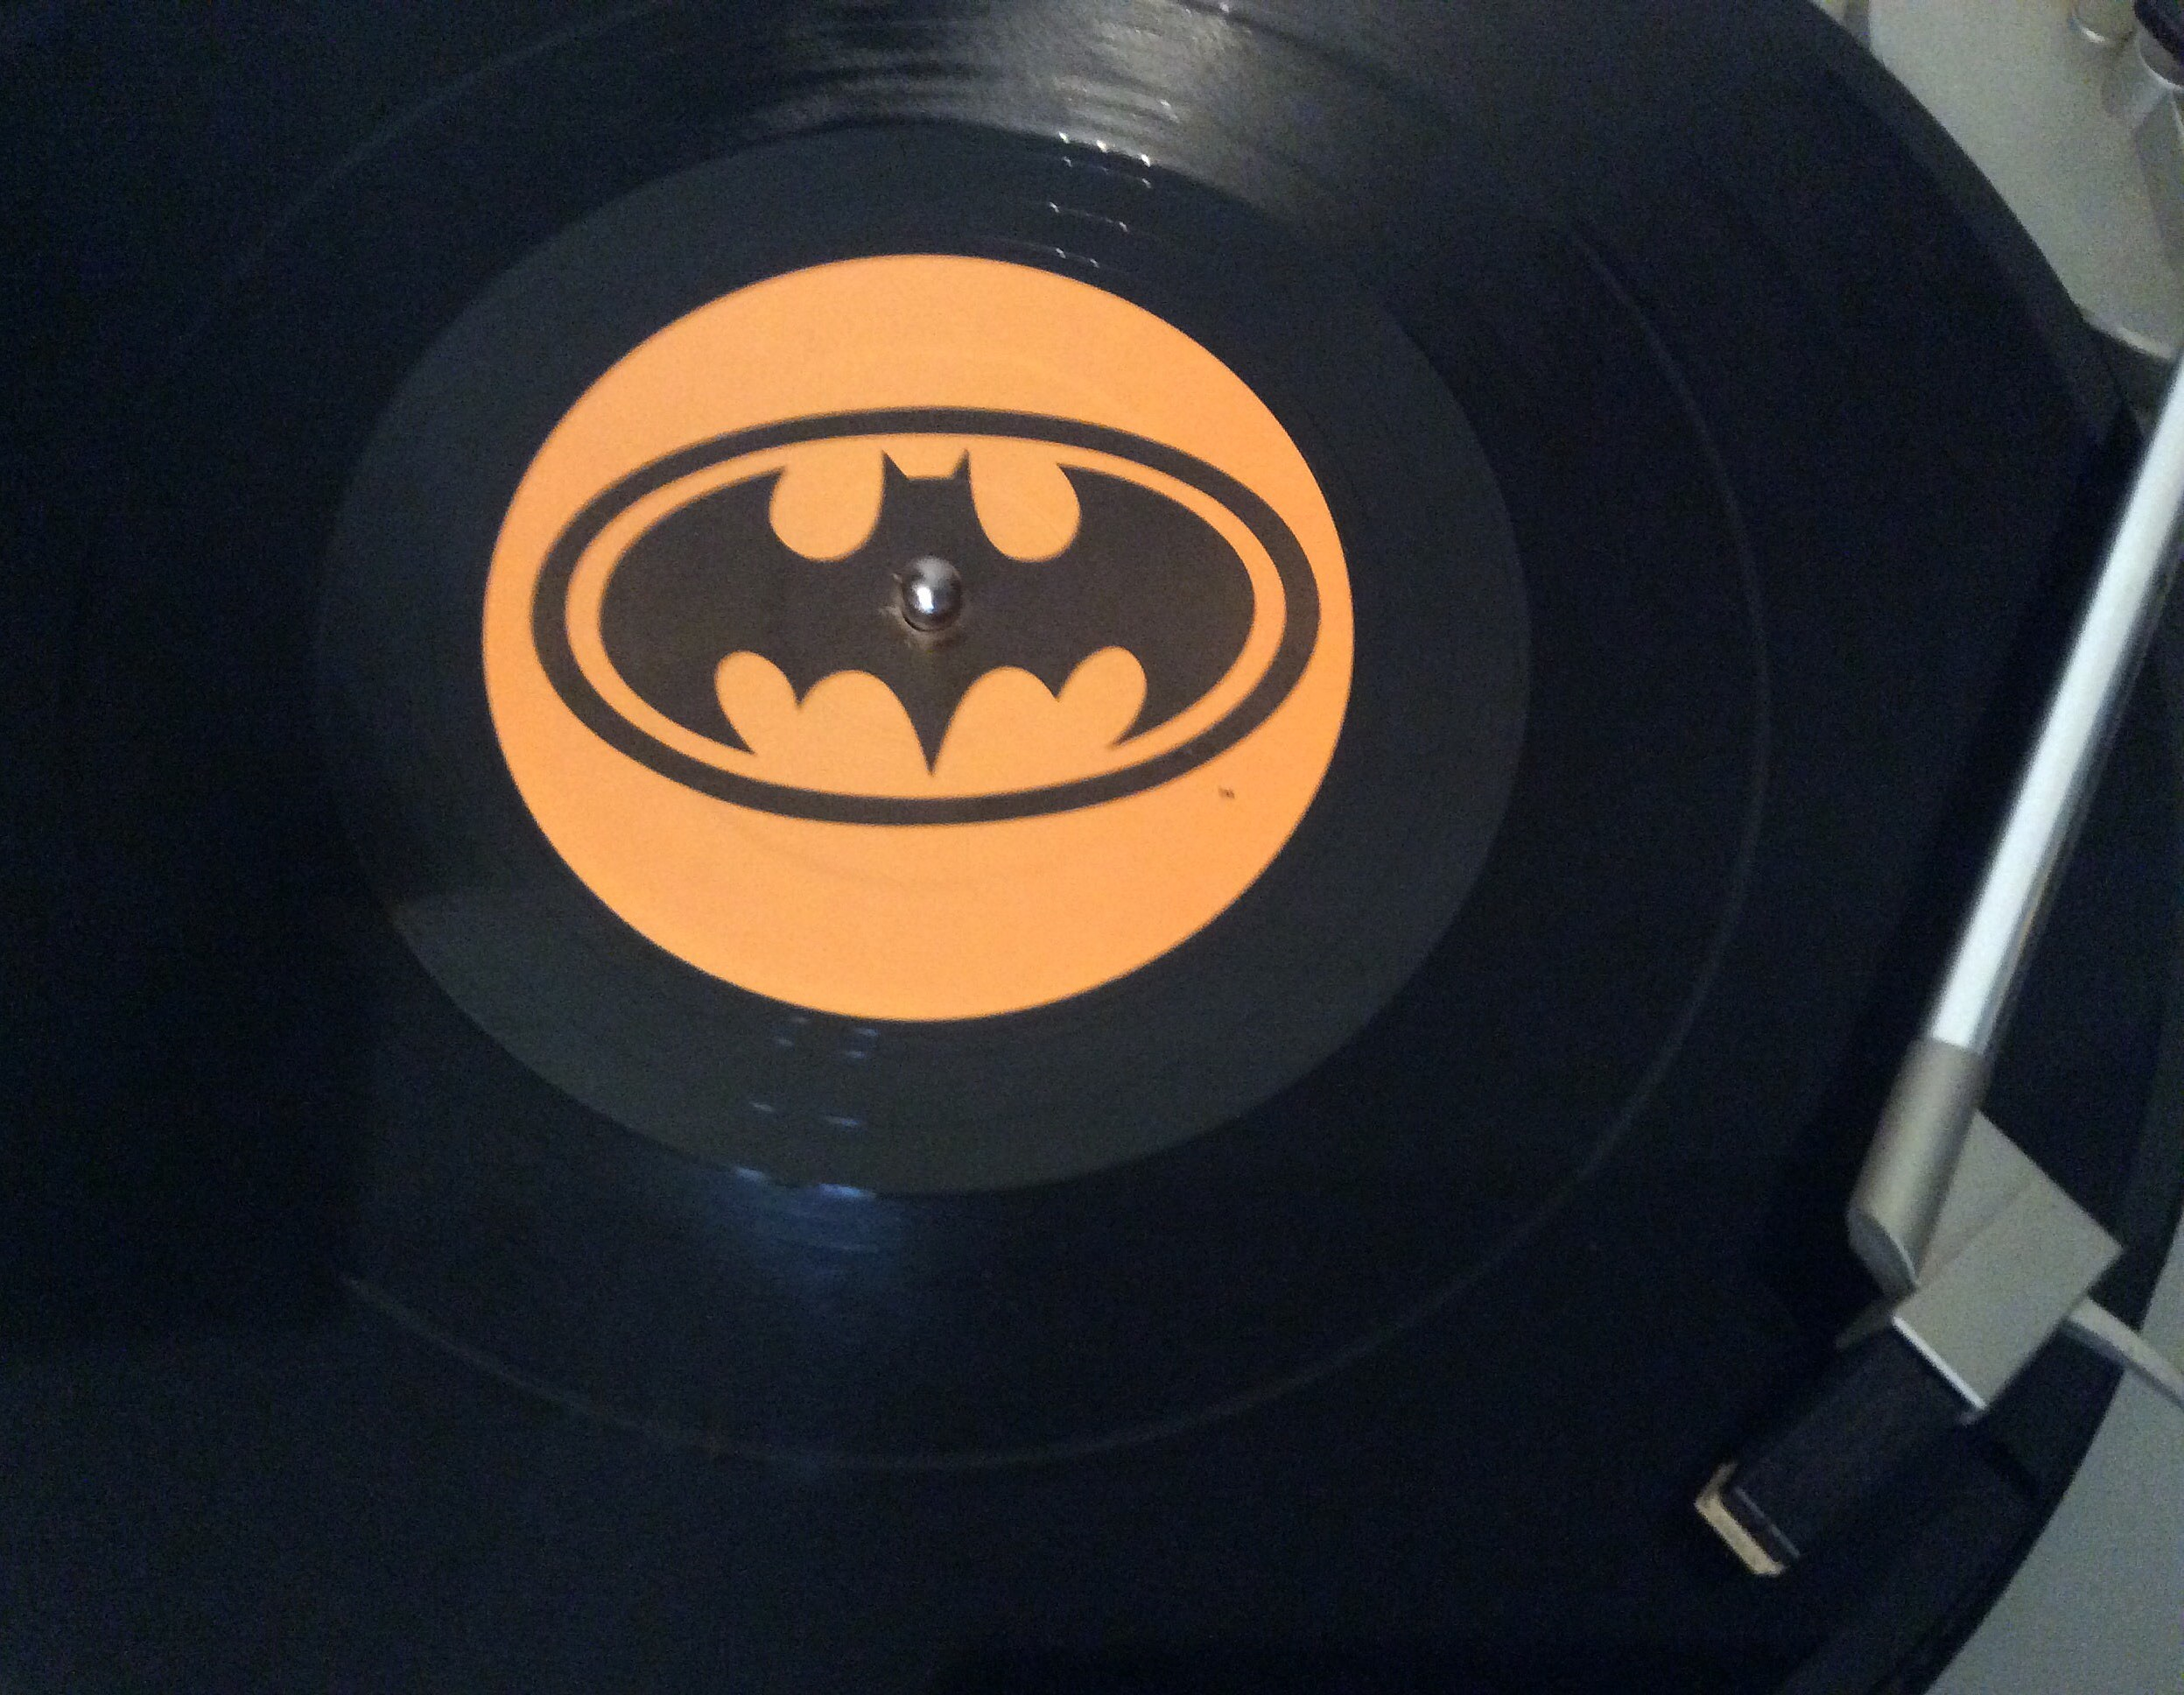 Guess the (1989) #1 song on my turntable... (Craig Allen photo).